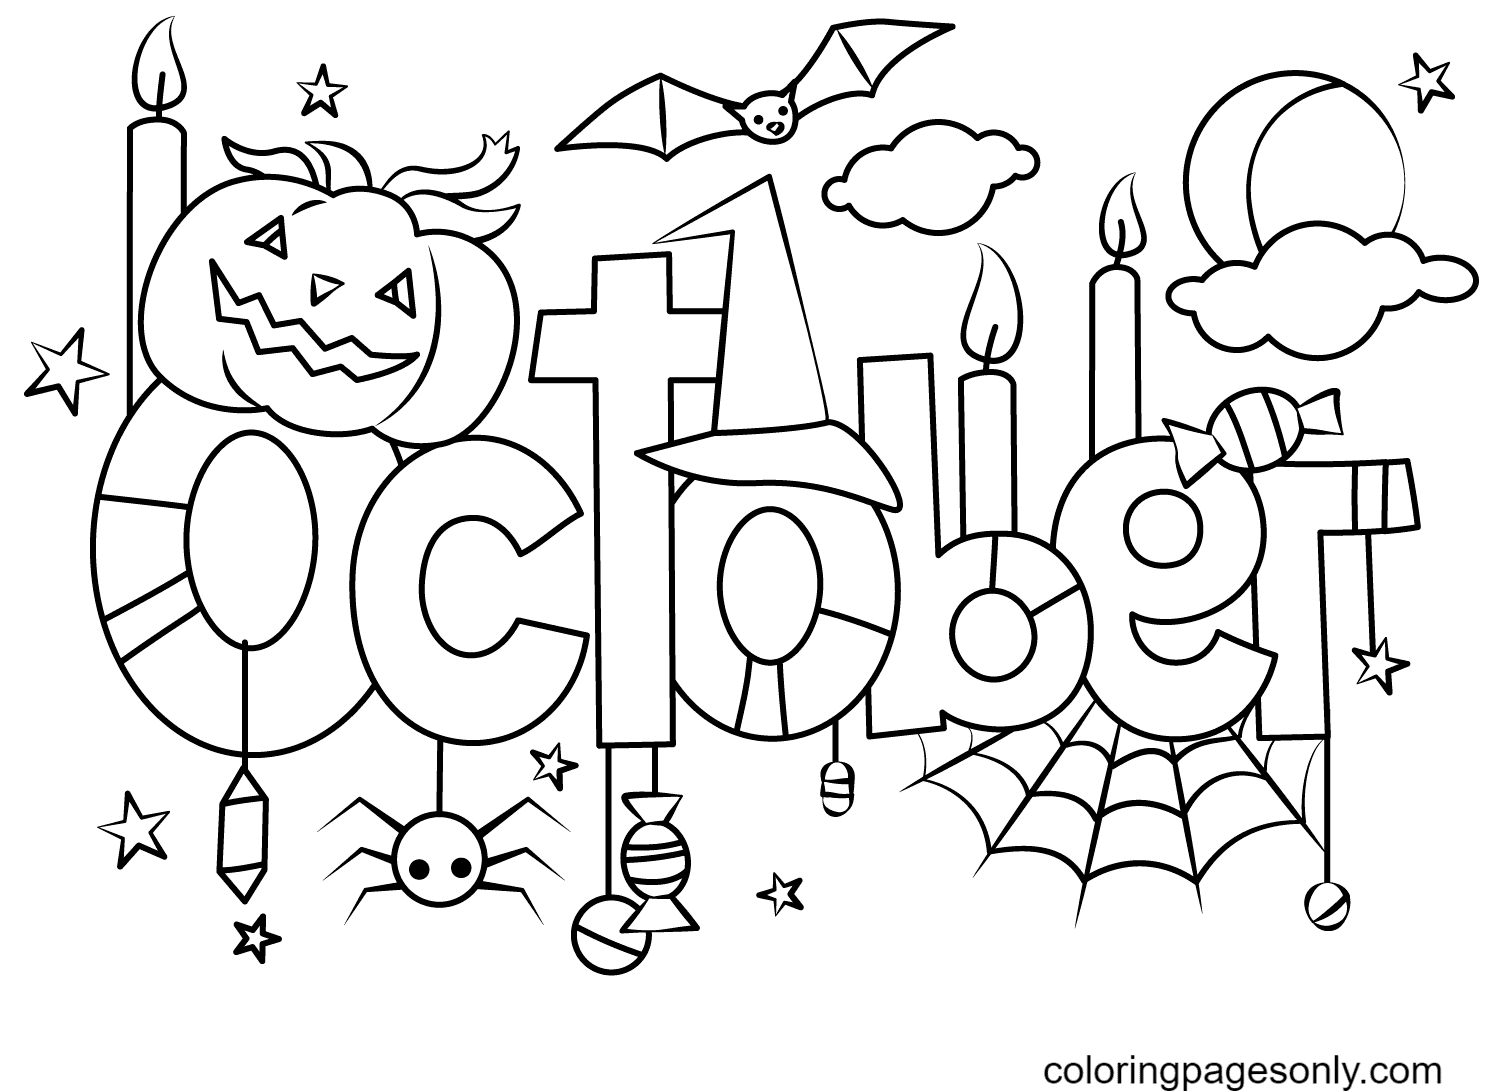 Happy October Month Coloring Page